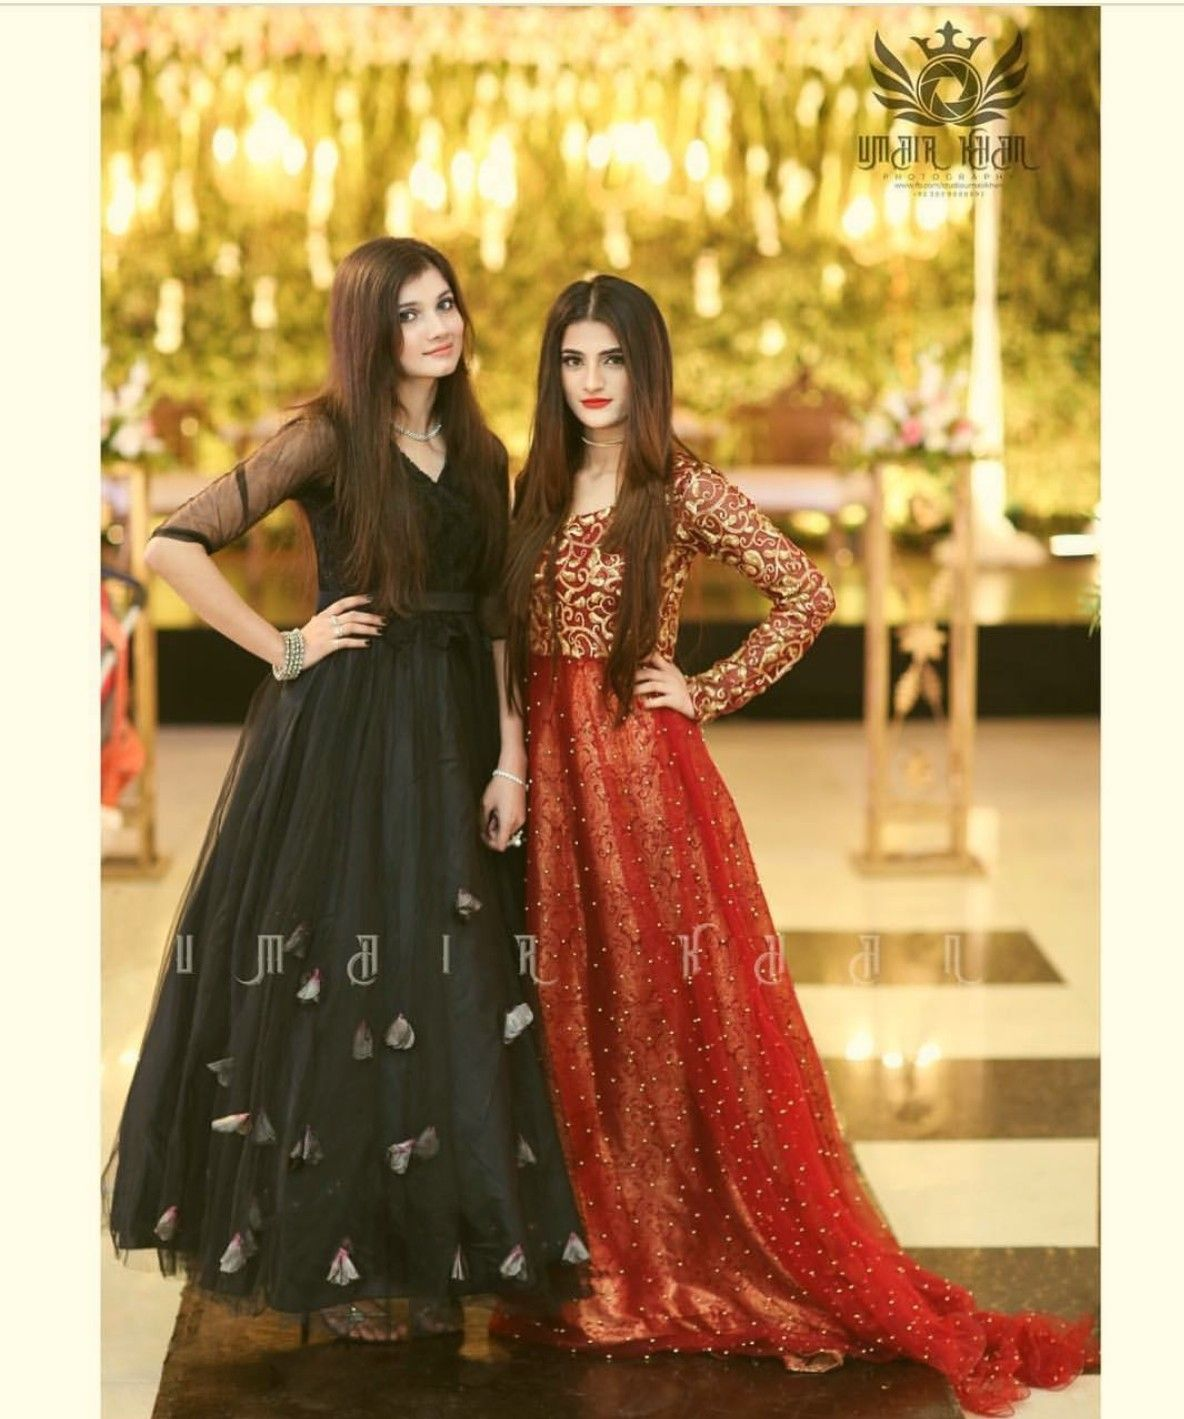 To acquire Pakistani stylish dresses pics picture trends